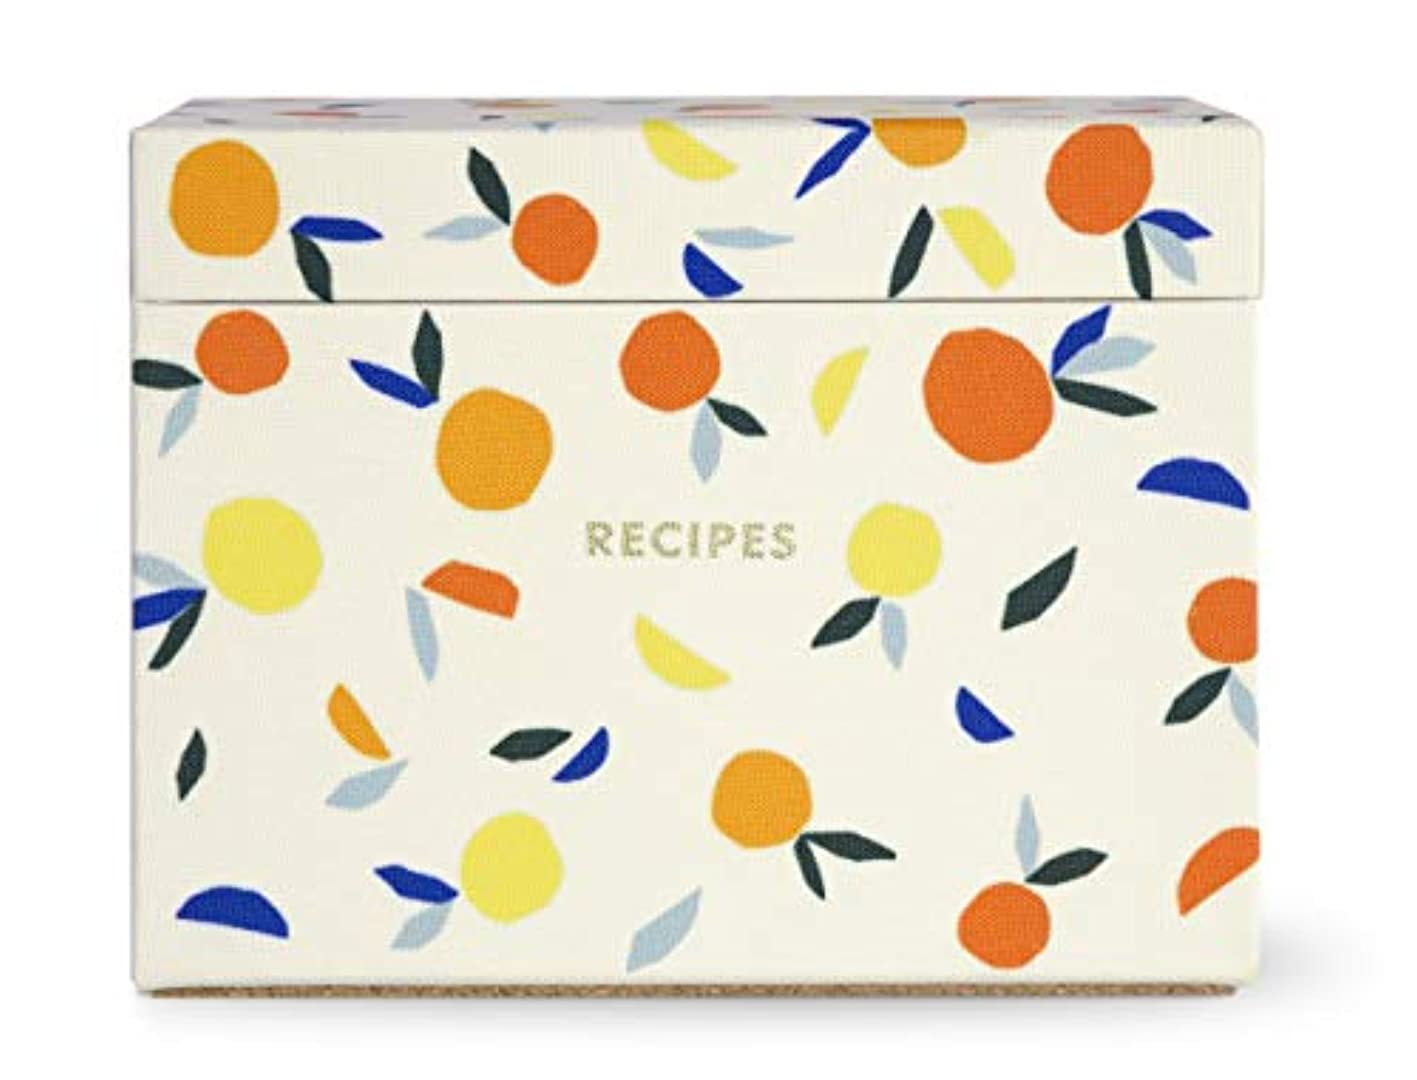 Kate Spade New York Recipe Box with 40 Double Sided Recipe Cards (Citrus Twist) yicpslxqwty759